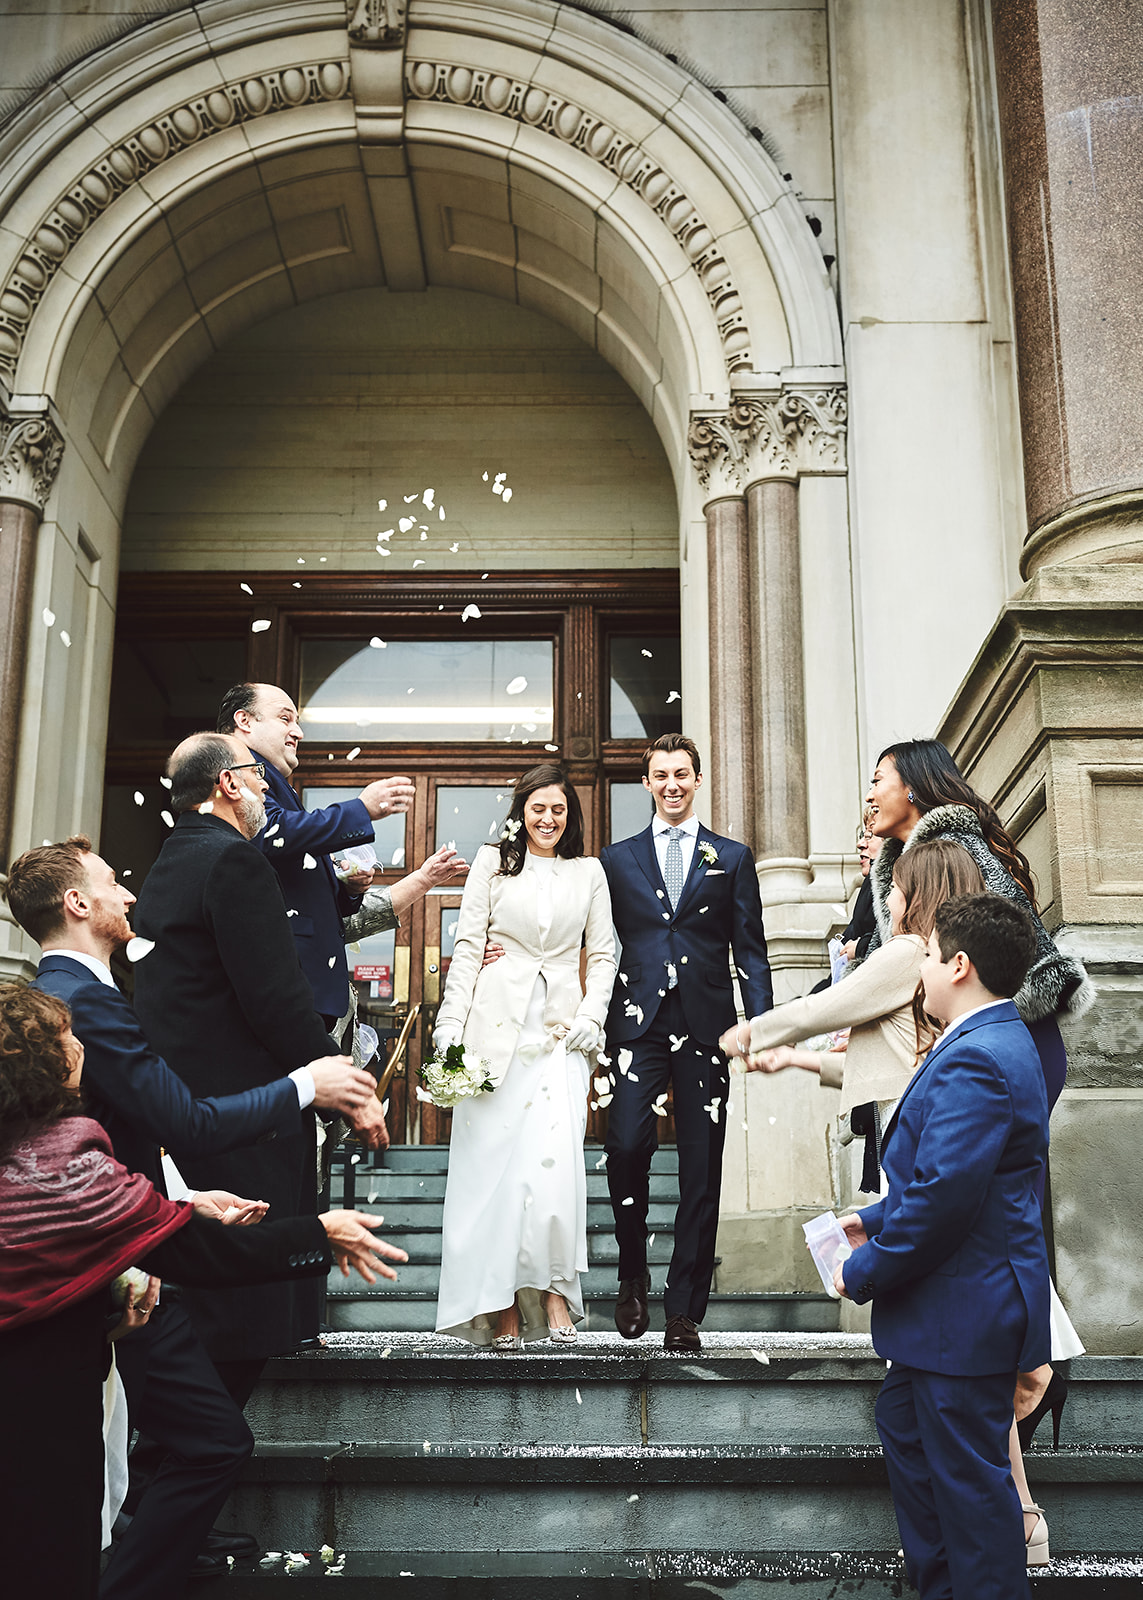 city hall wedding guests throwing flower petals at bride and groom descending staircase